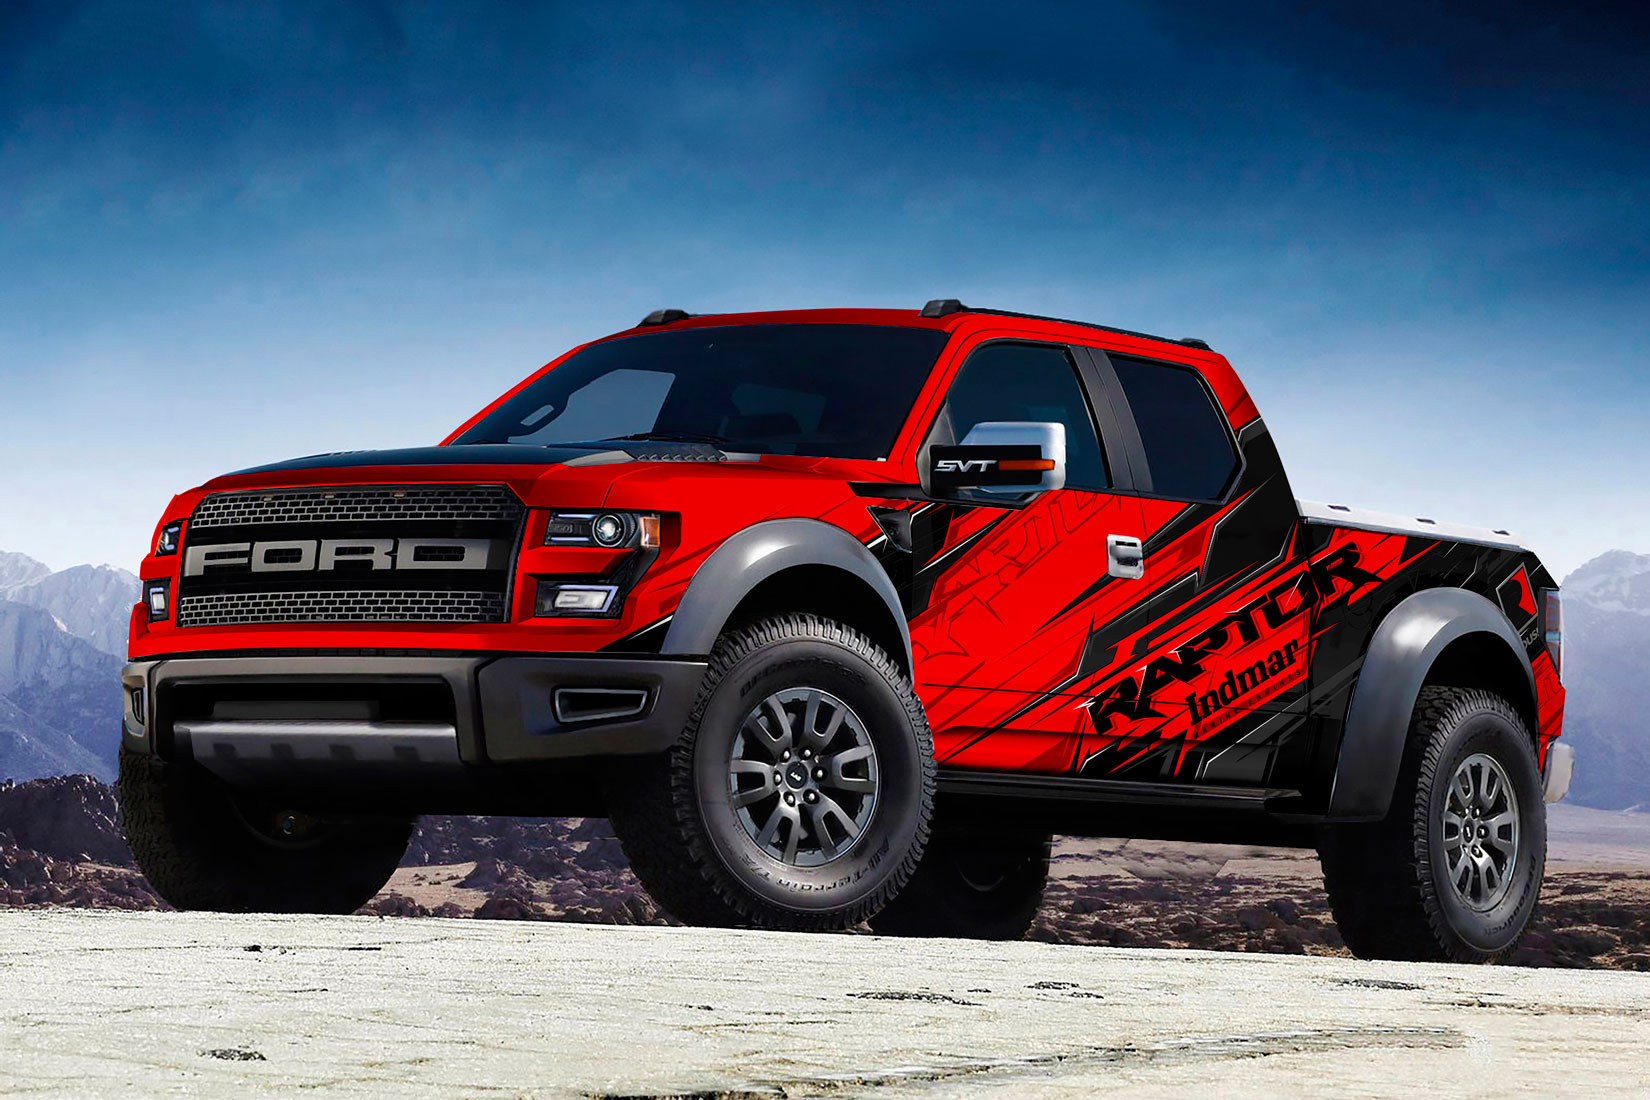 Ford F150 20152017 Predator truck bed graphics decal